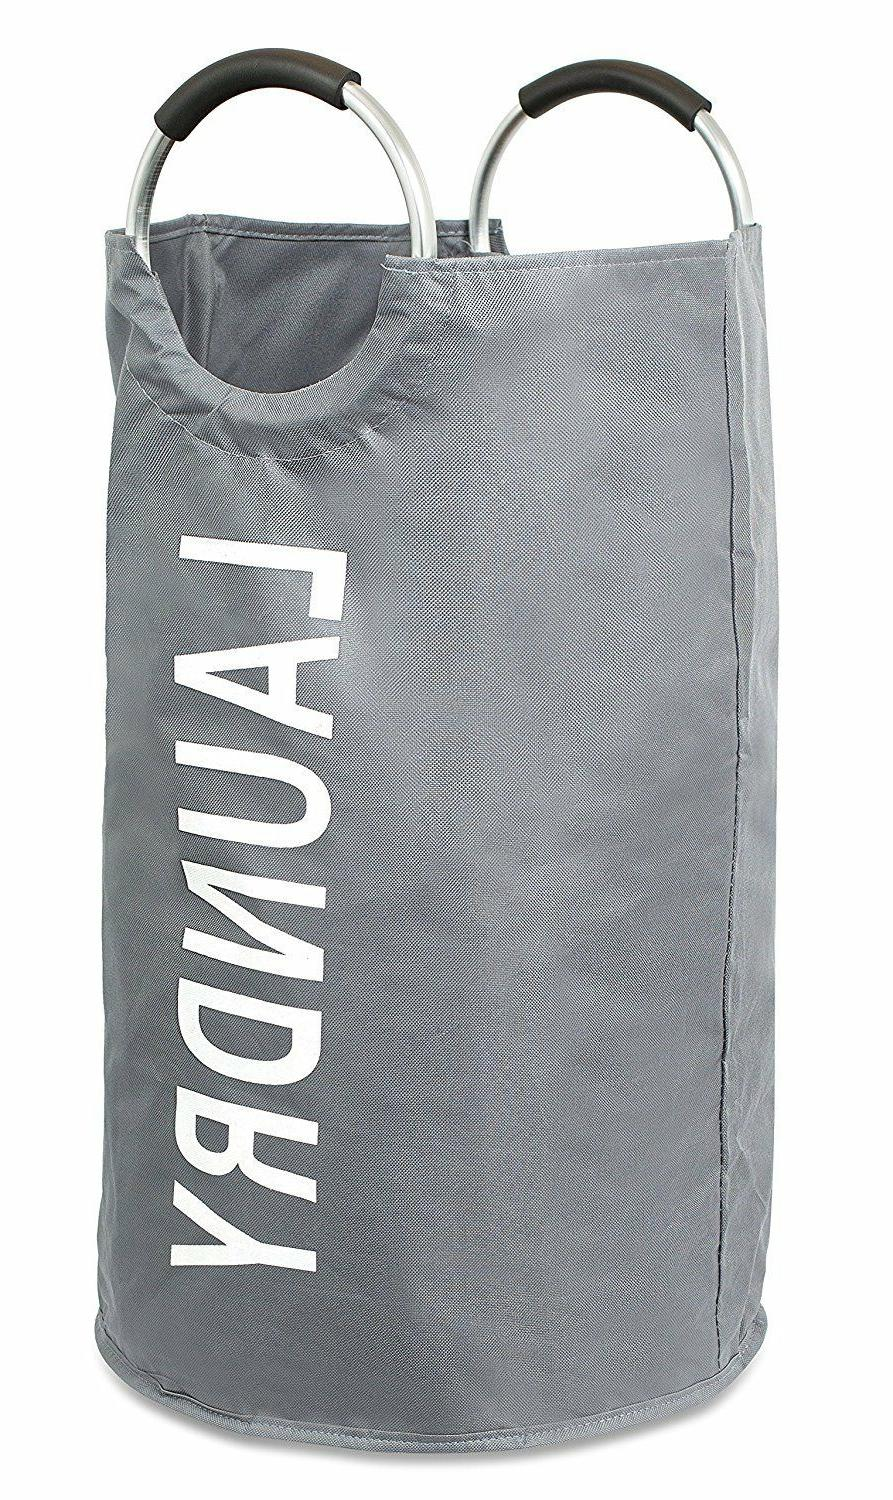 Round Oxford Laundry Bag Basket Collapsible Foldable Gray Bi